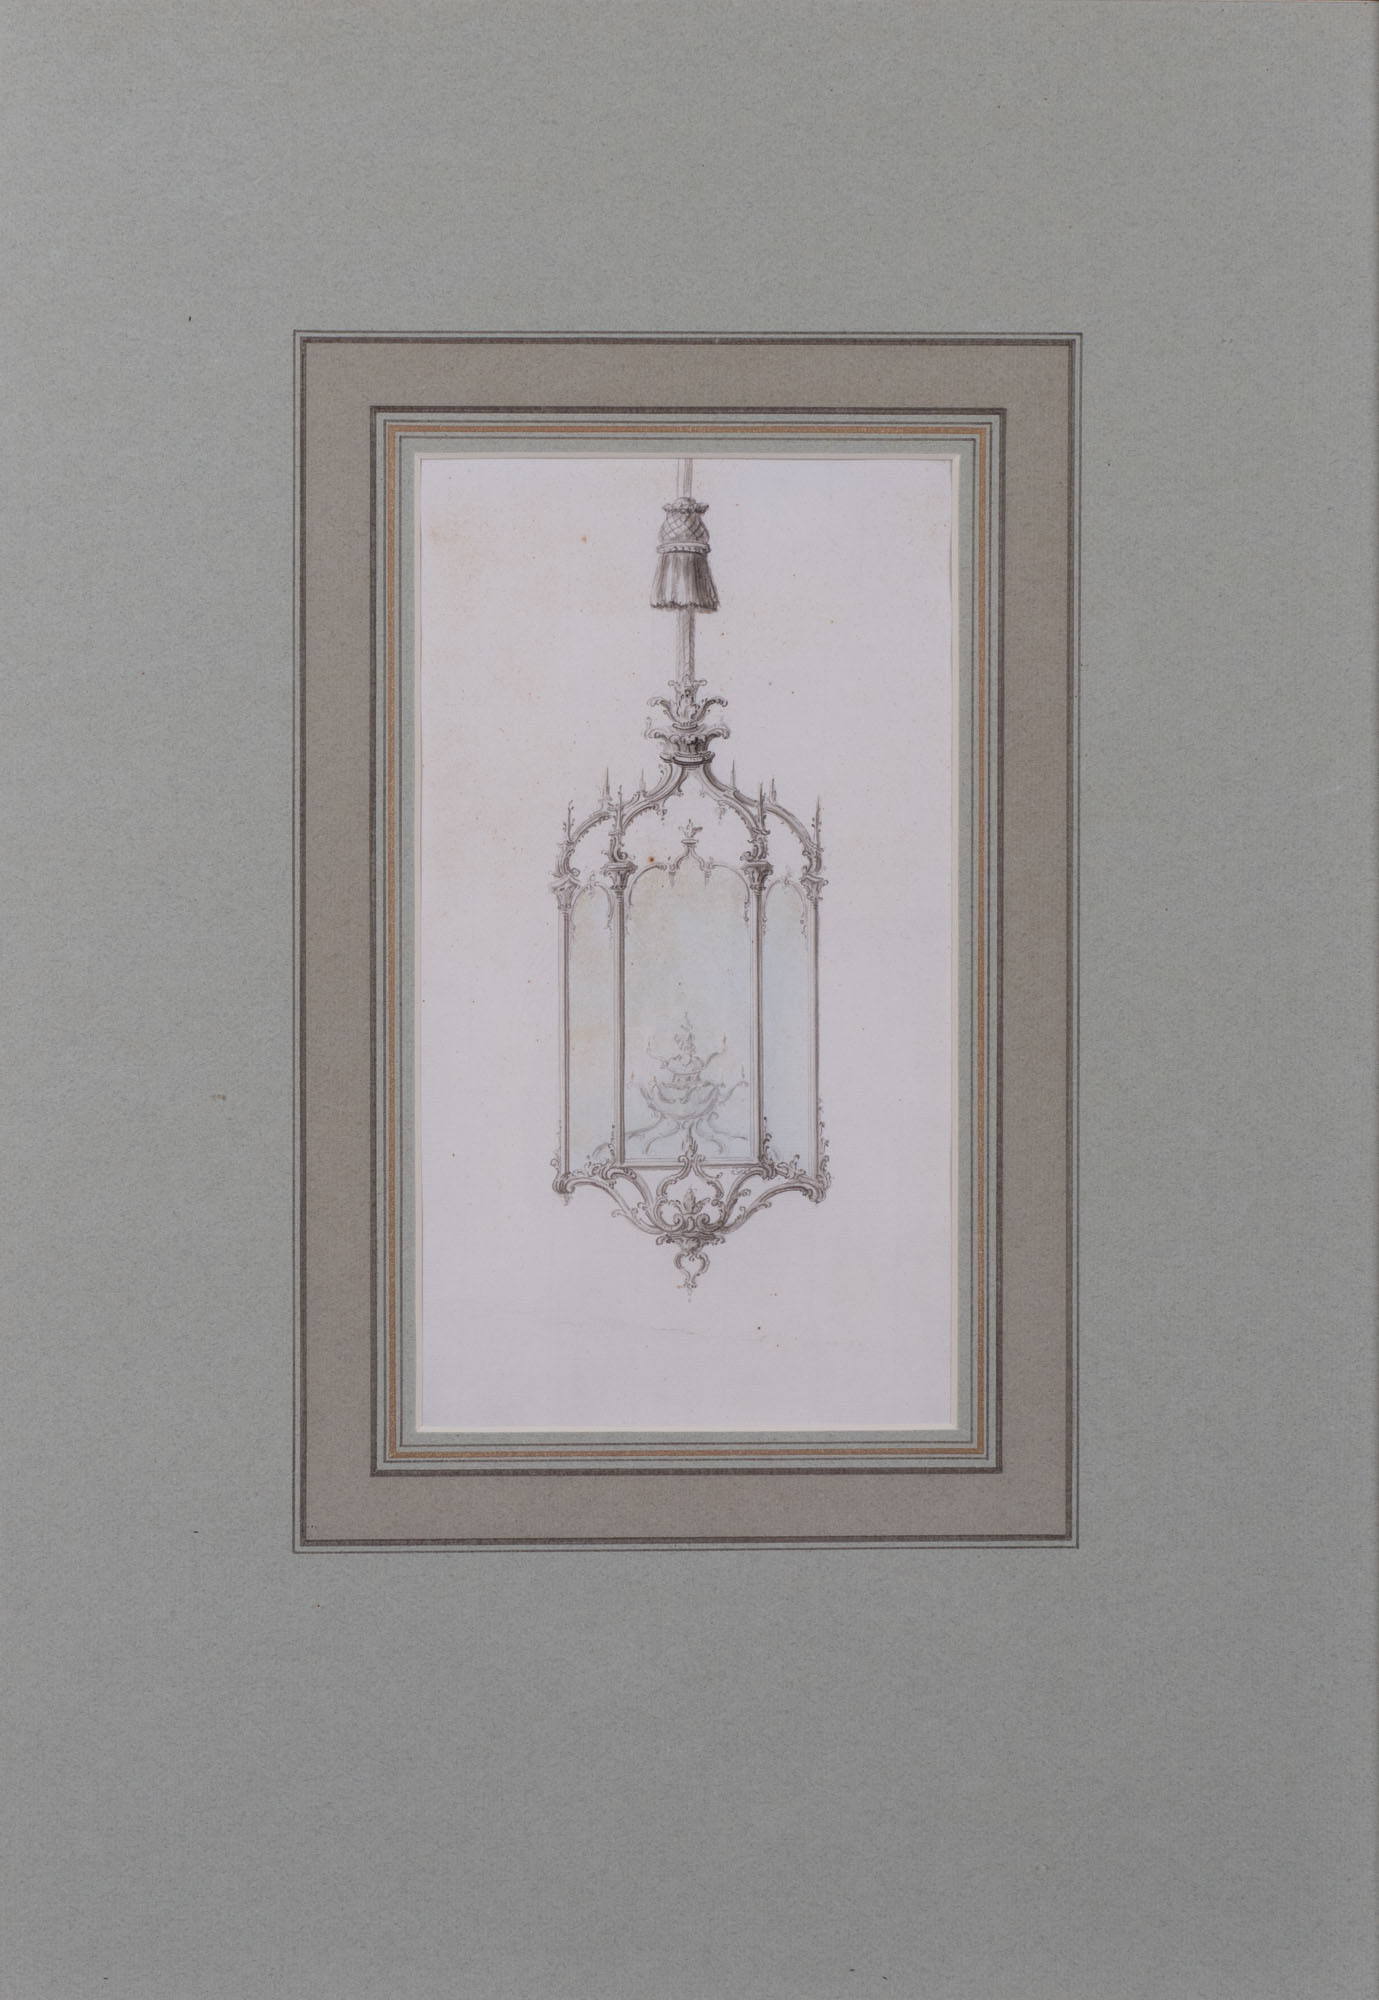 Design for a Hanging Lantern, English School, circa 1760.